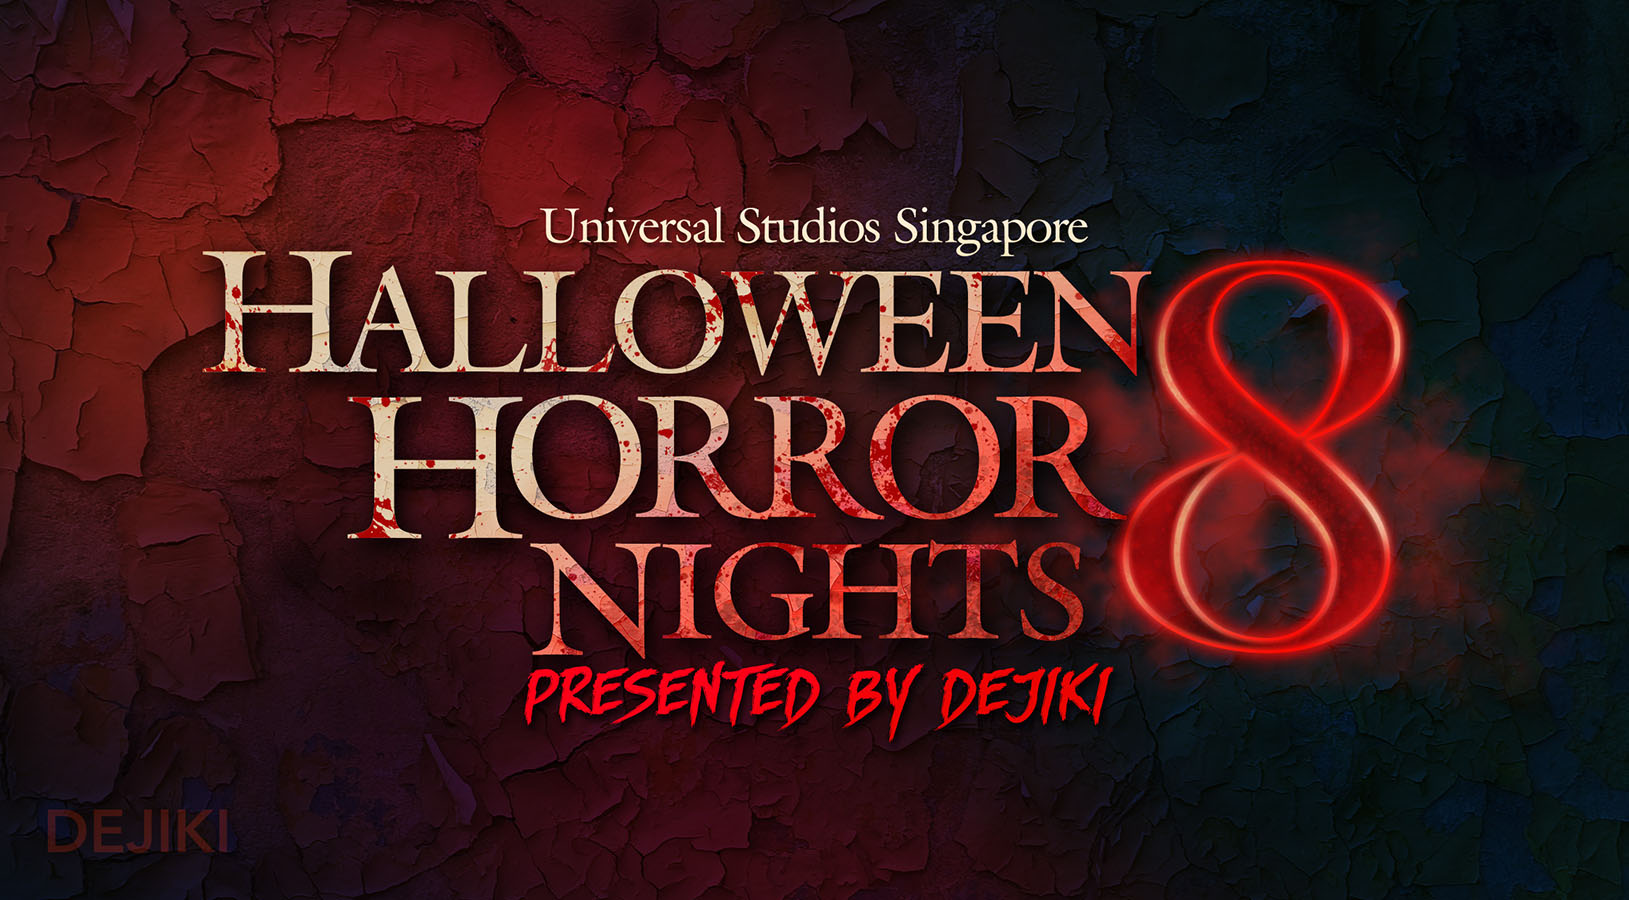 Halloween Fright Night China Movie.Halloween Horror Nights 8 Revealed Dejiki Com